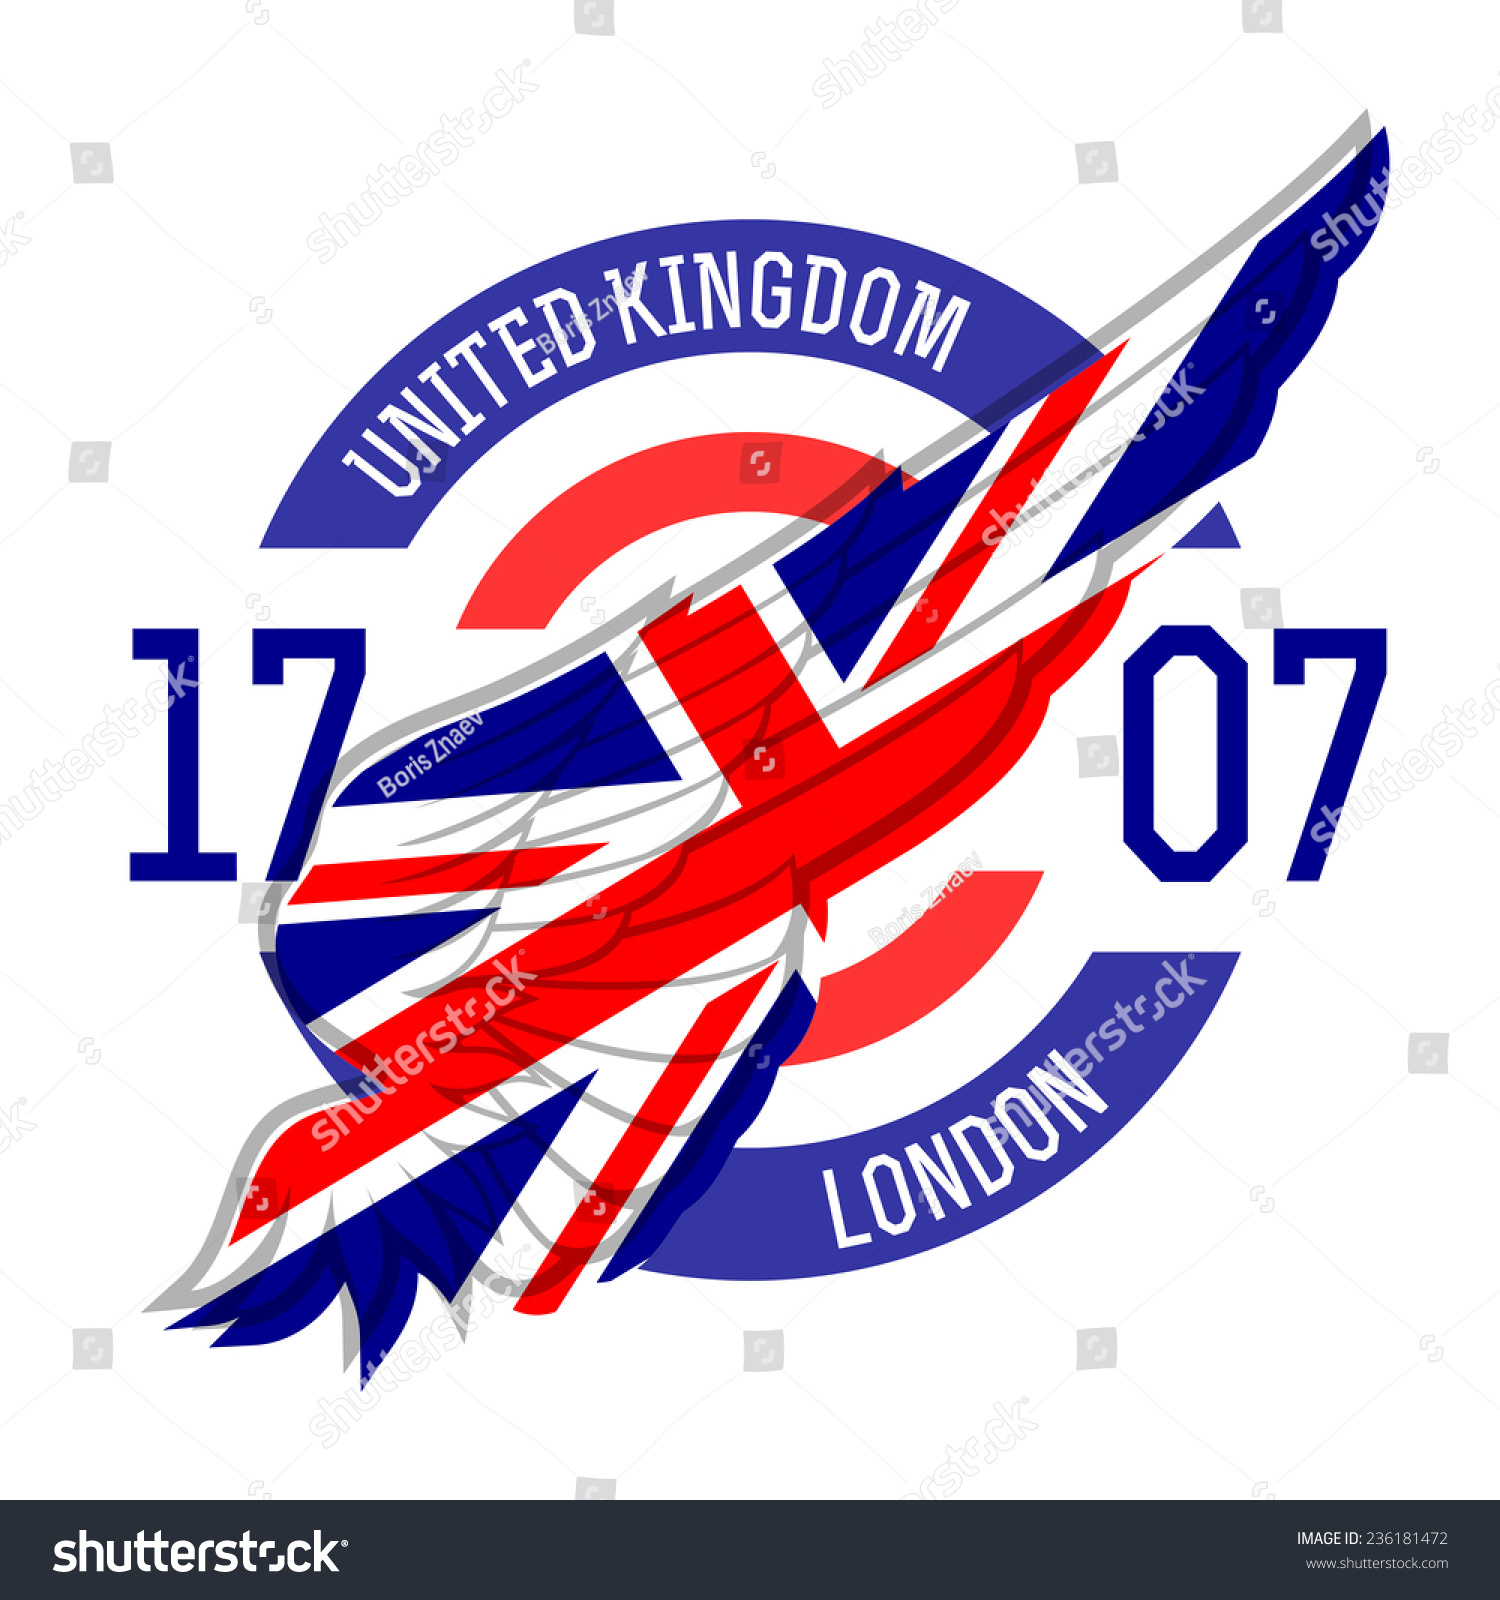 Design t shirt uk - London T Shirt Design Tee Templates With Wing And United Kingdom Flag Colors And